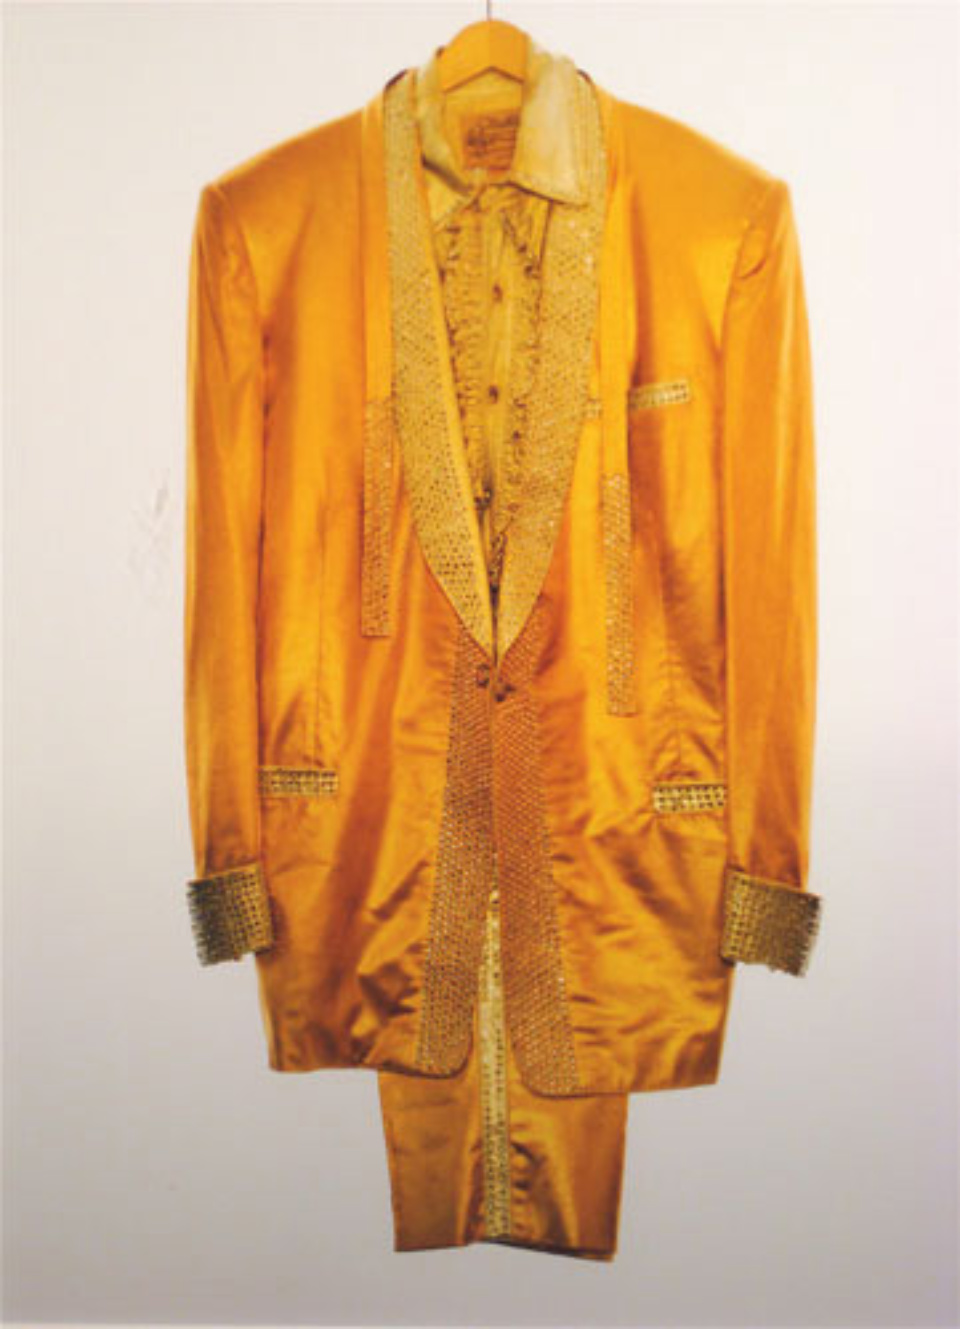 Albert Watson: Elvis Presley's Gold Lamé Suit Graceland, Memphis 1991 C-print Signed, titled, dated and numbered on verso Ed. 25